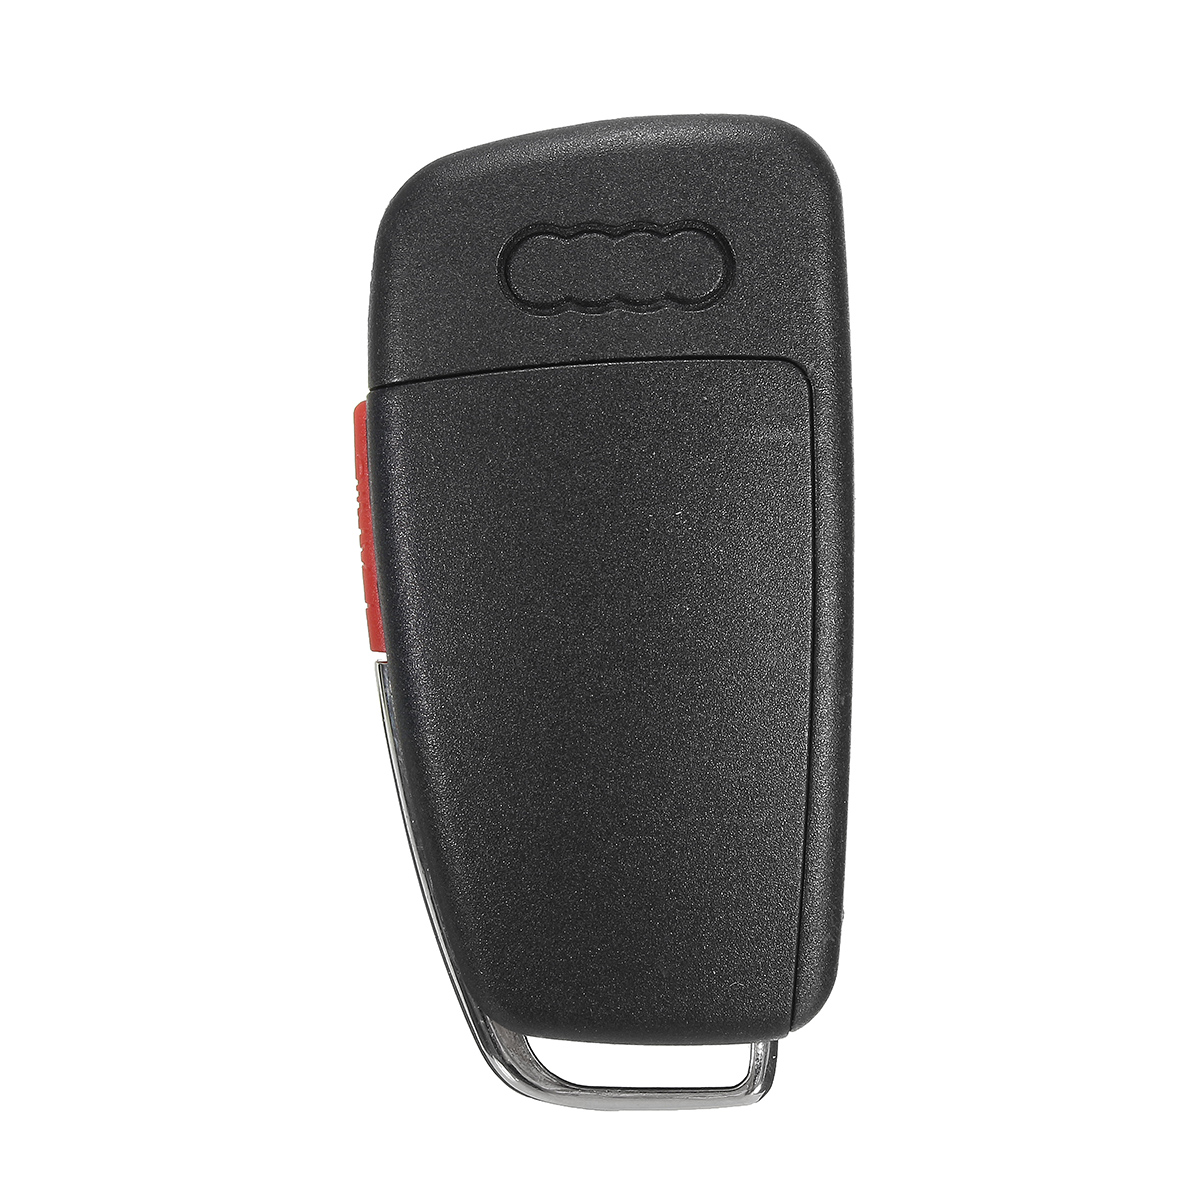 New 3+1 Buttons Remote Key Fob Case Uncut Blade For Audi